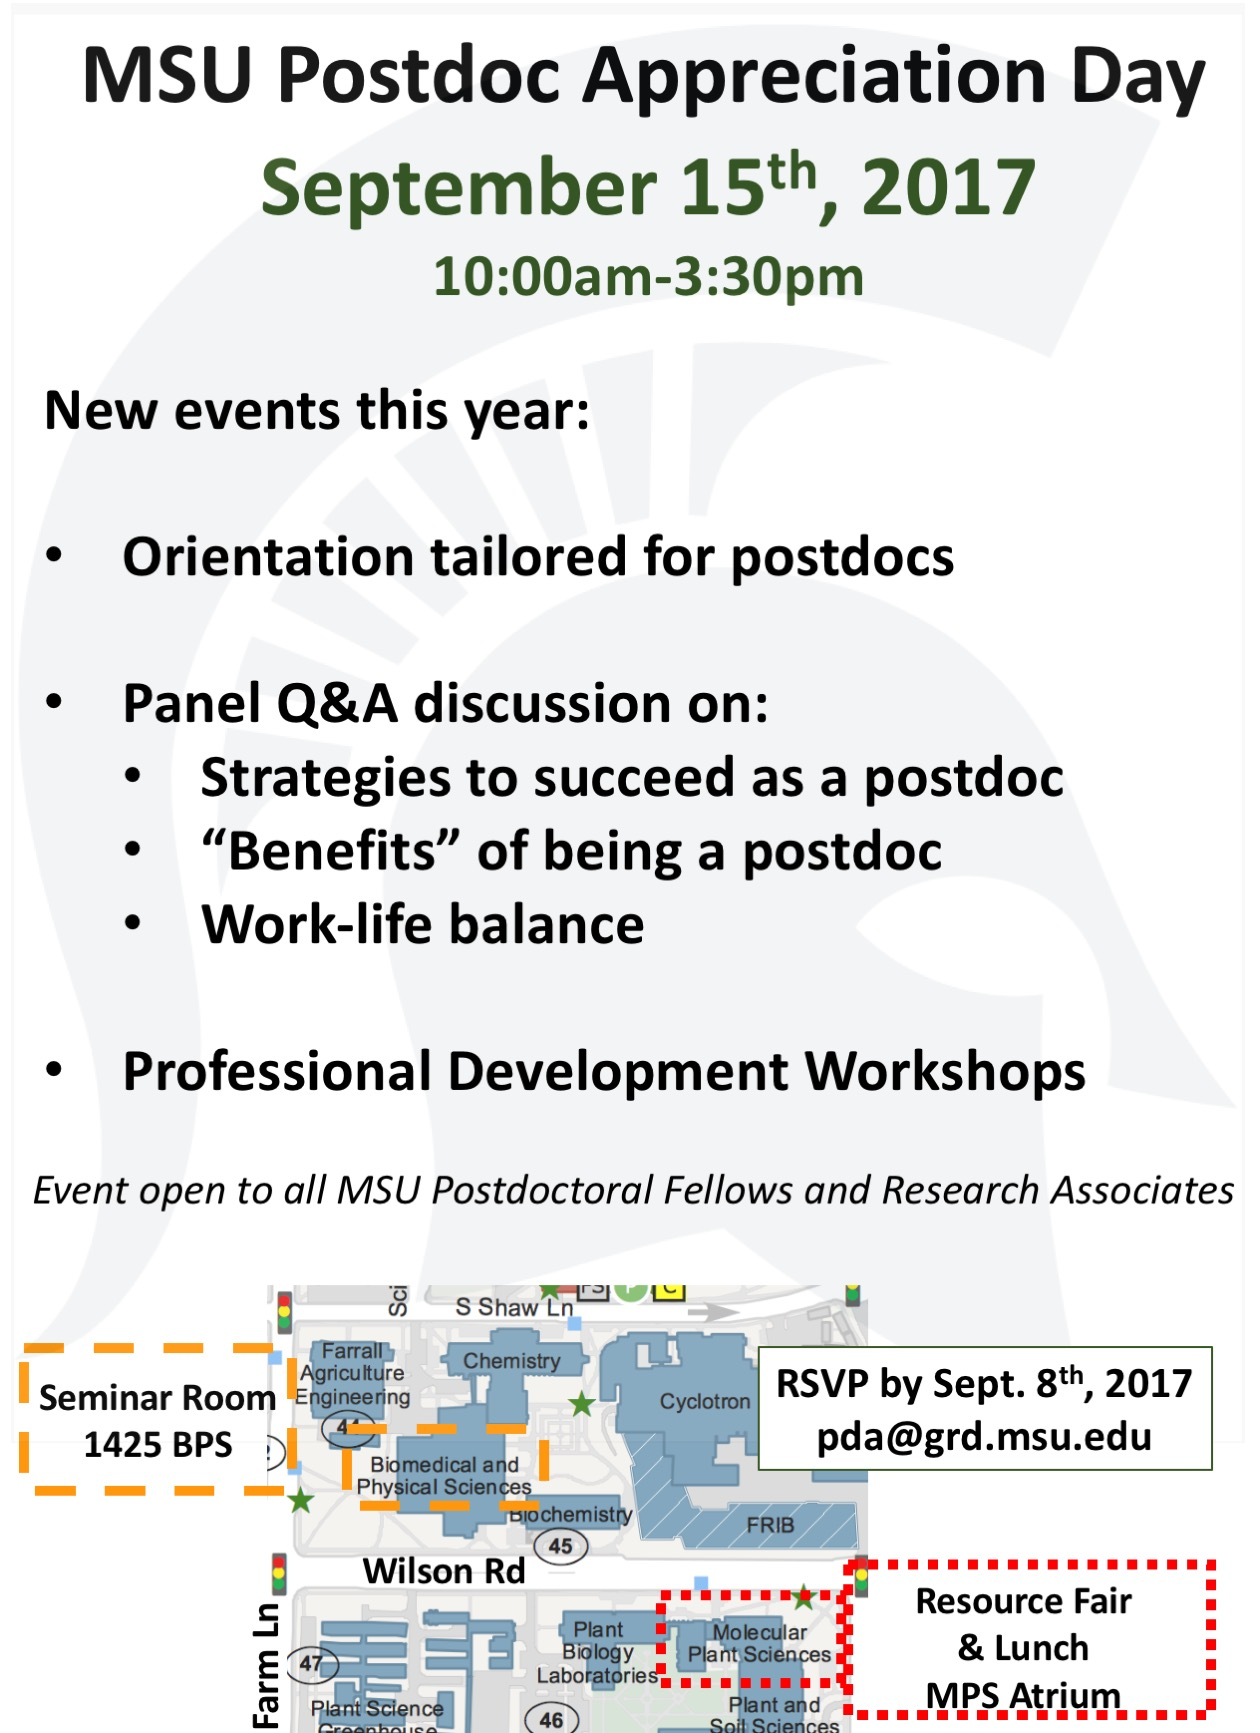 "New events this year: orientation tailored for postdocs; Panel Q and A discussion on: strategies to succeed as a postdoc, ""benefits"" of being a postdoc, work-life balance; professional development workshops. event open to all MSU postdoctoral fellows and research associates."